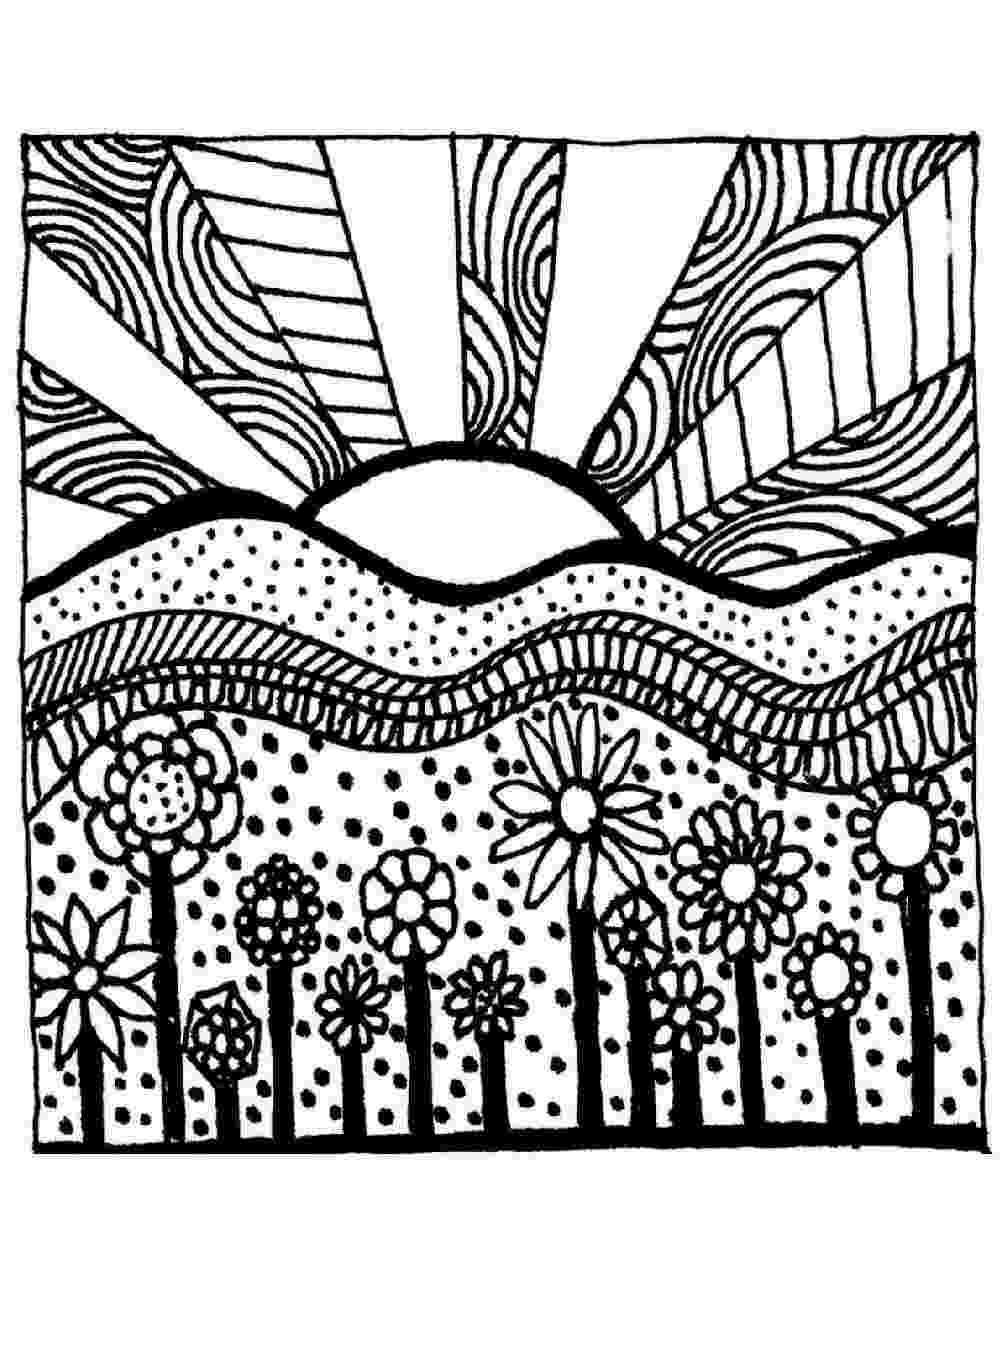 coloring pages for adults free online 10 crazy hair adult coloring pages mermaid coloring free online pages for coloring adults